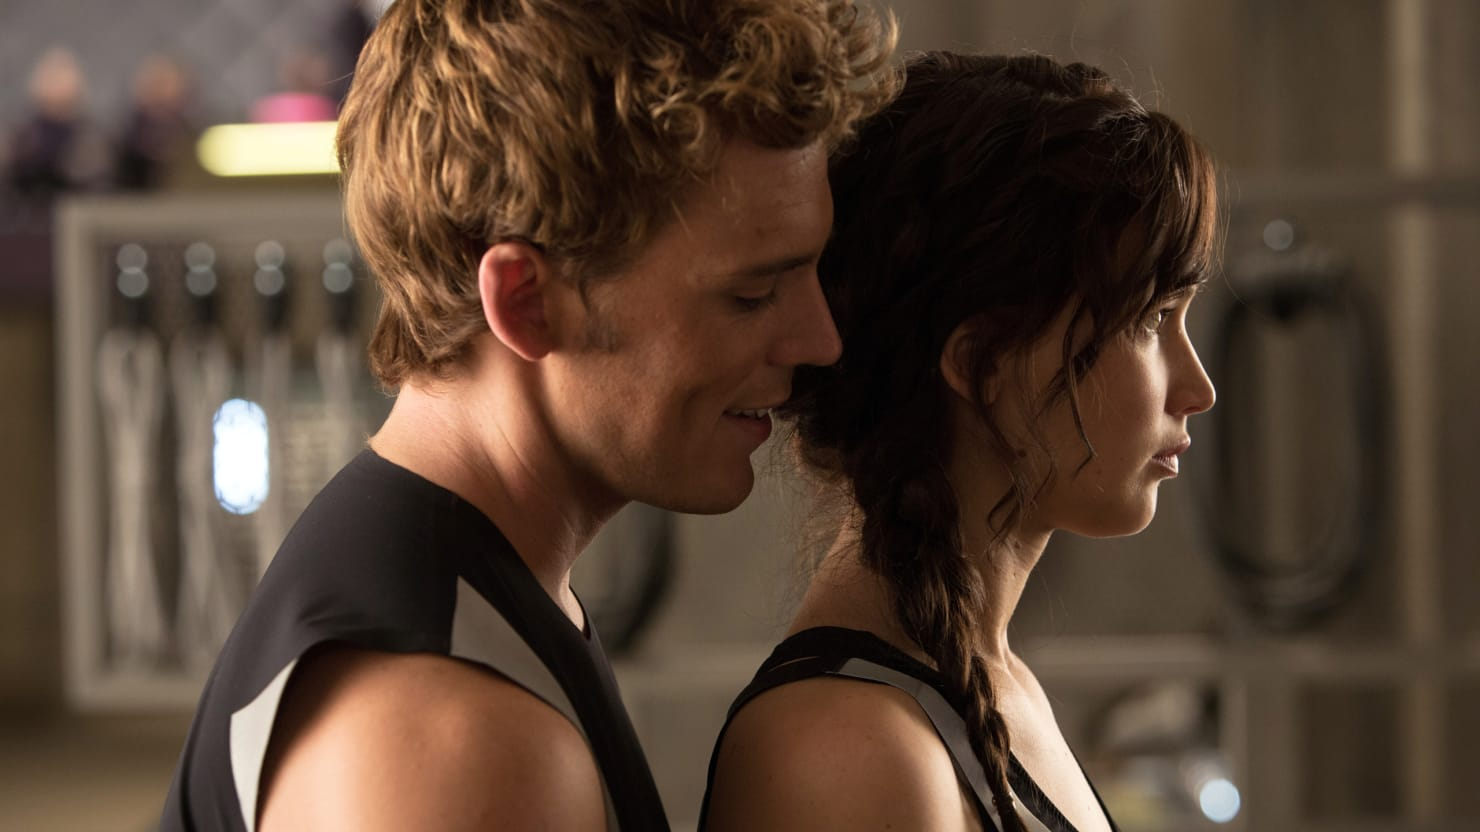 'Hunger Games' Star Sam Claflin Is as Surprised as You Are That He Was Cast as Finnick Odair